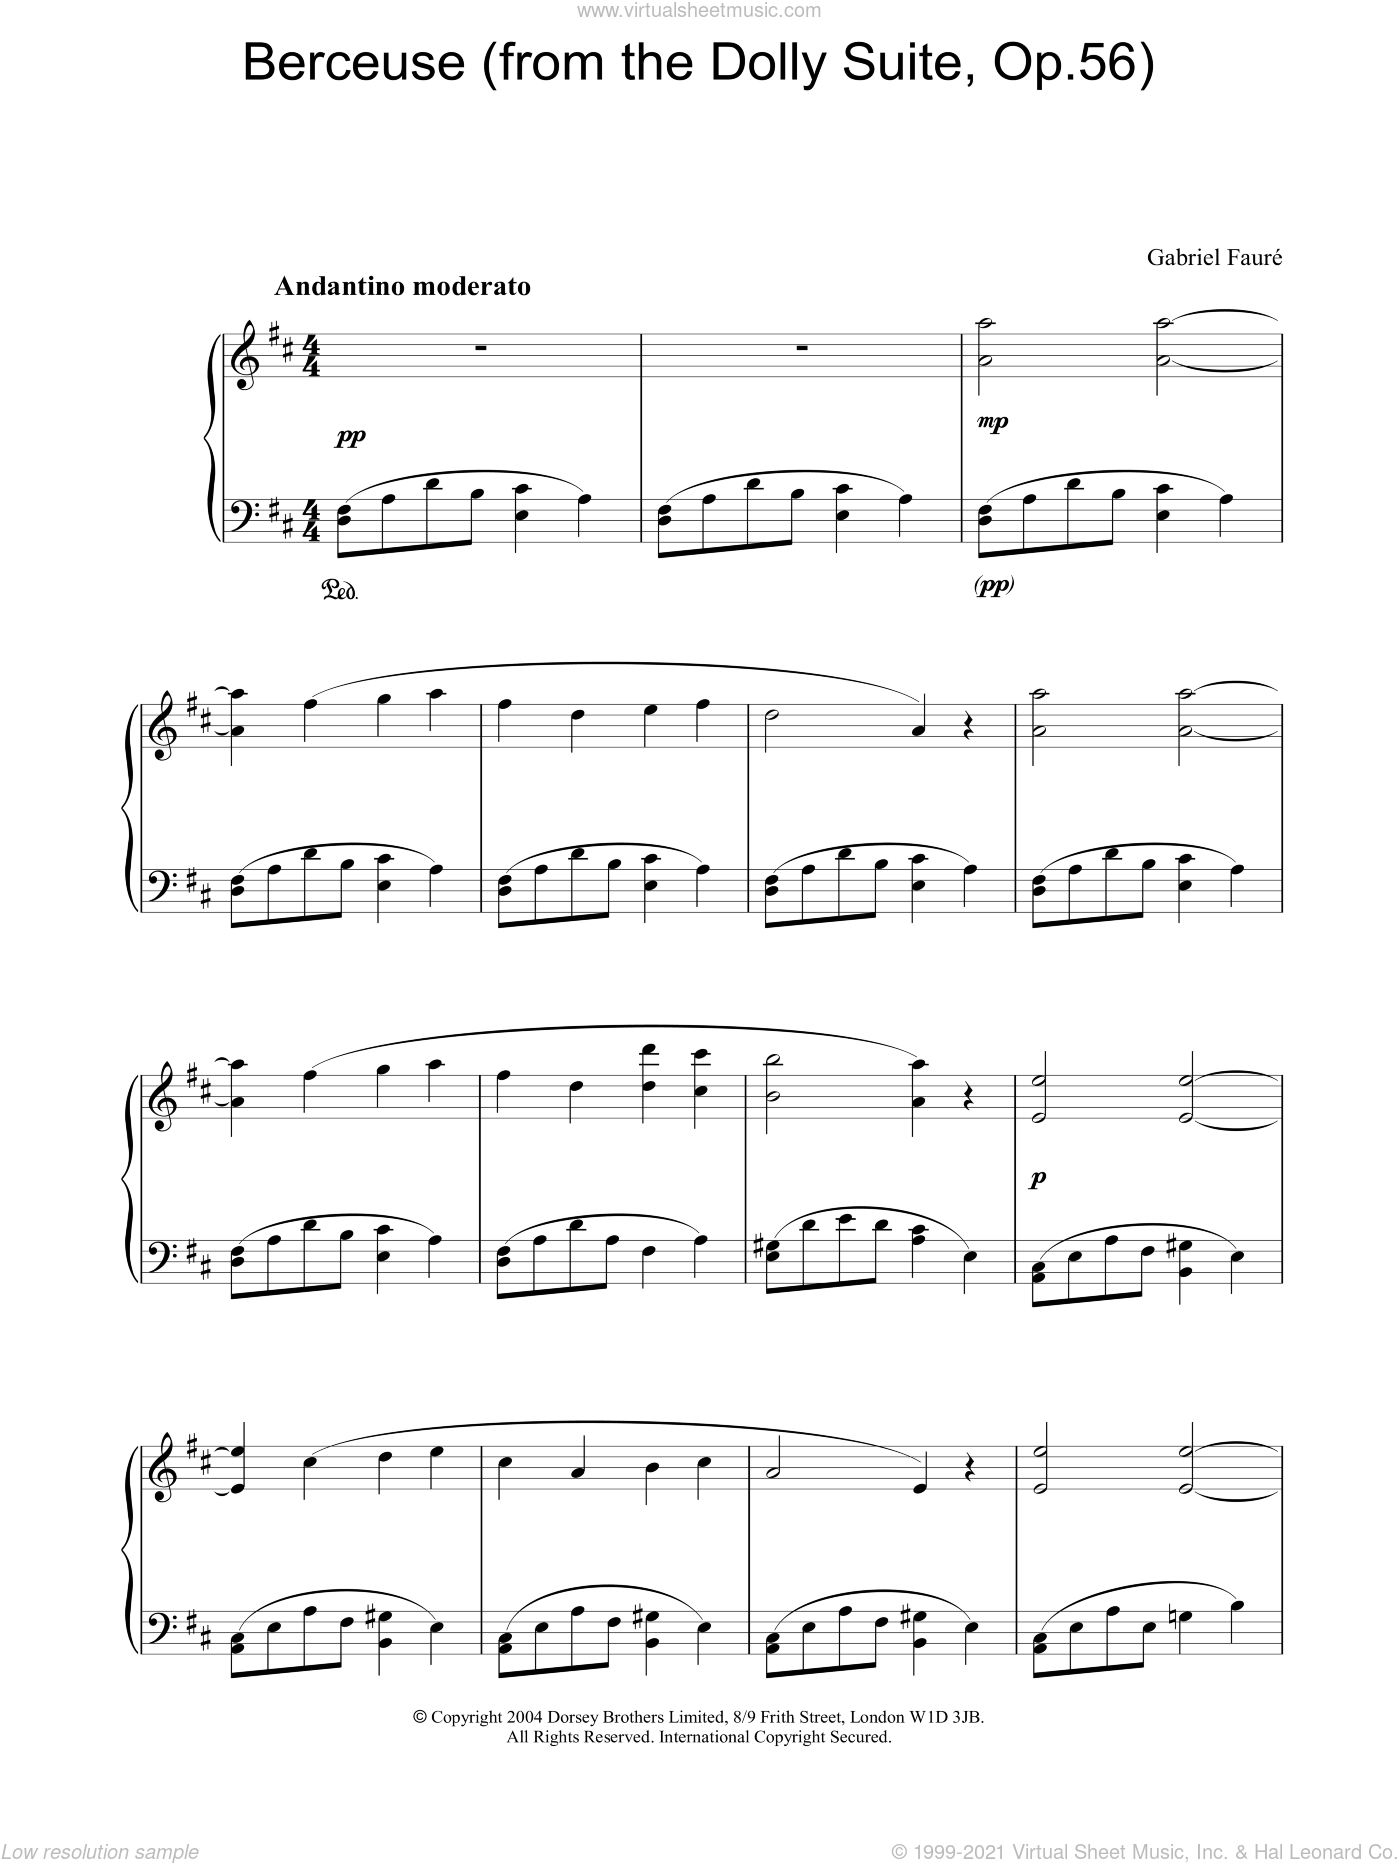 Berceuse (from the Dolly Suite, Op.56) sheet music for piano solo by Gabriel Faure. Score Image Preview.